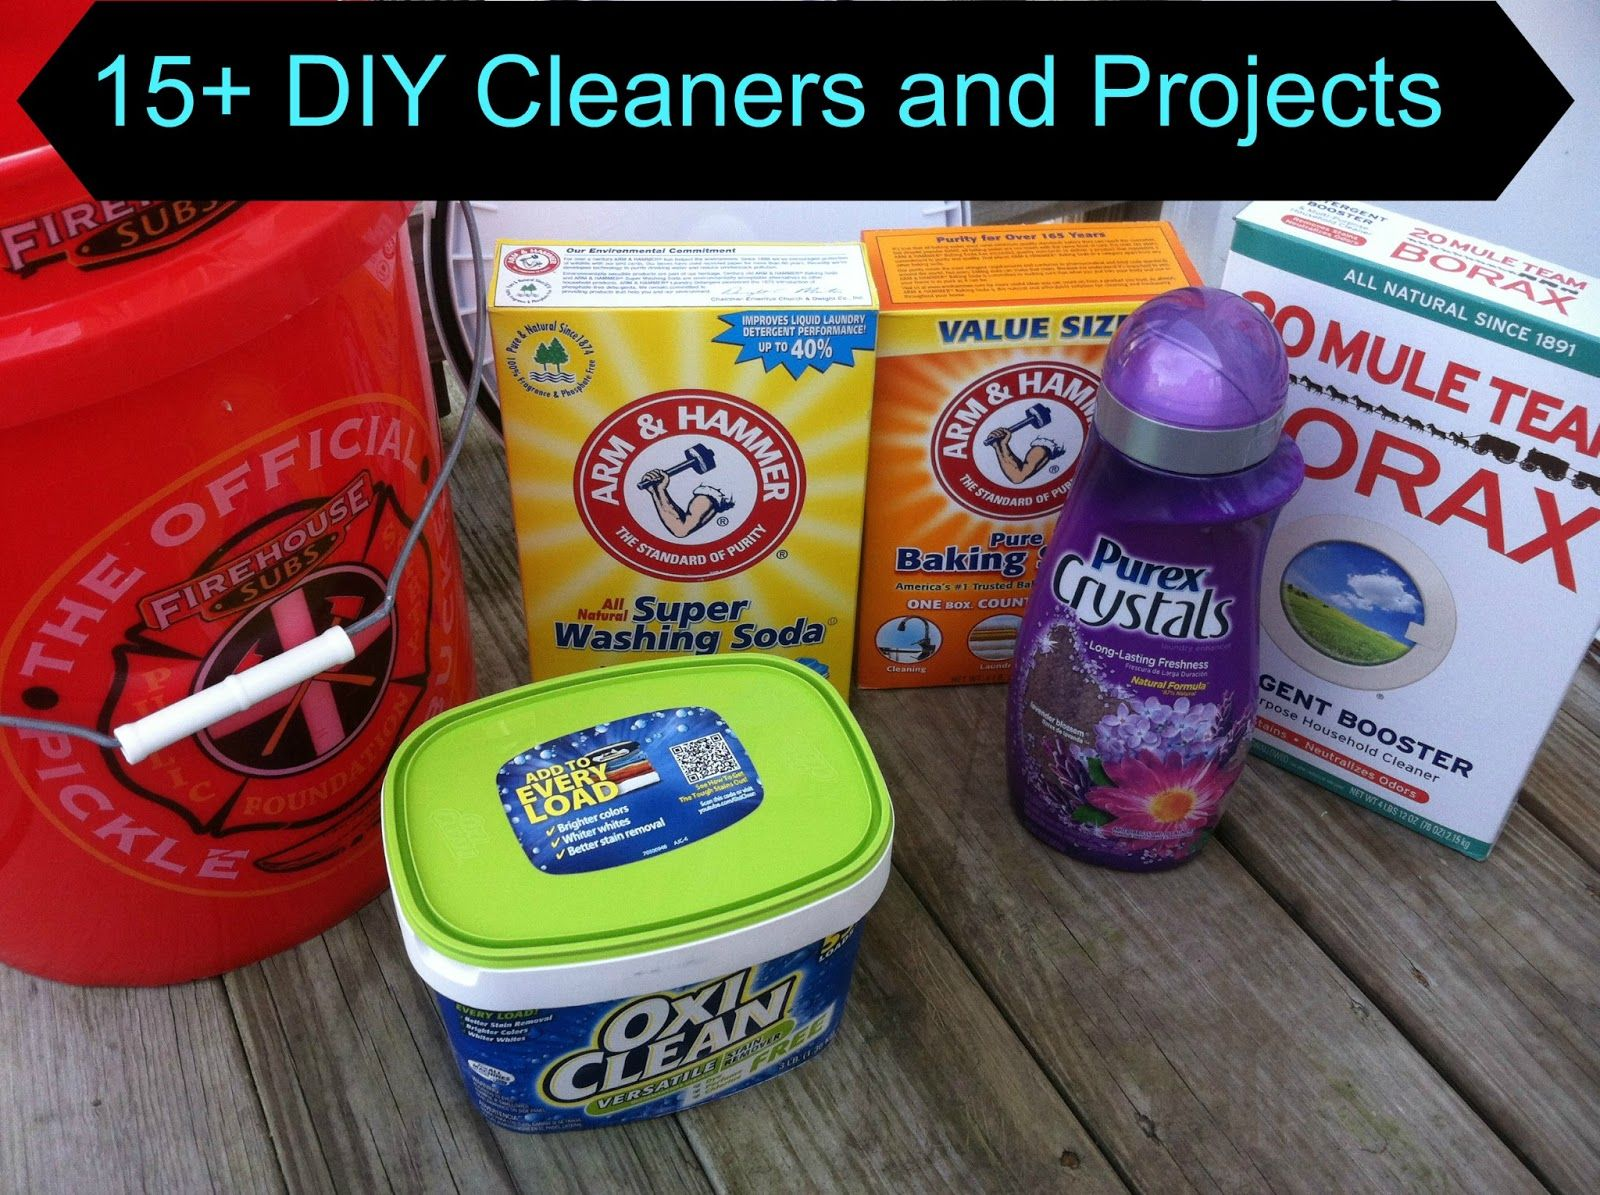 All of the DIY cleaners, laundry detergent, carpet powder all in one place!